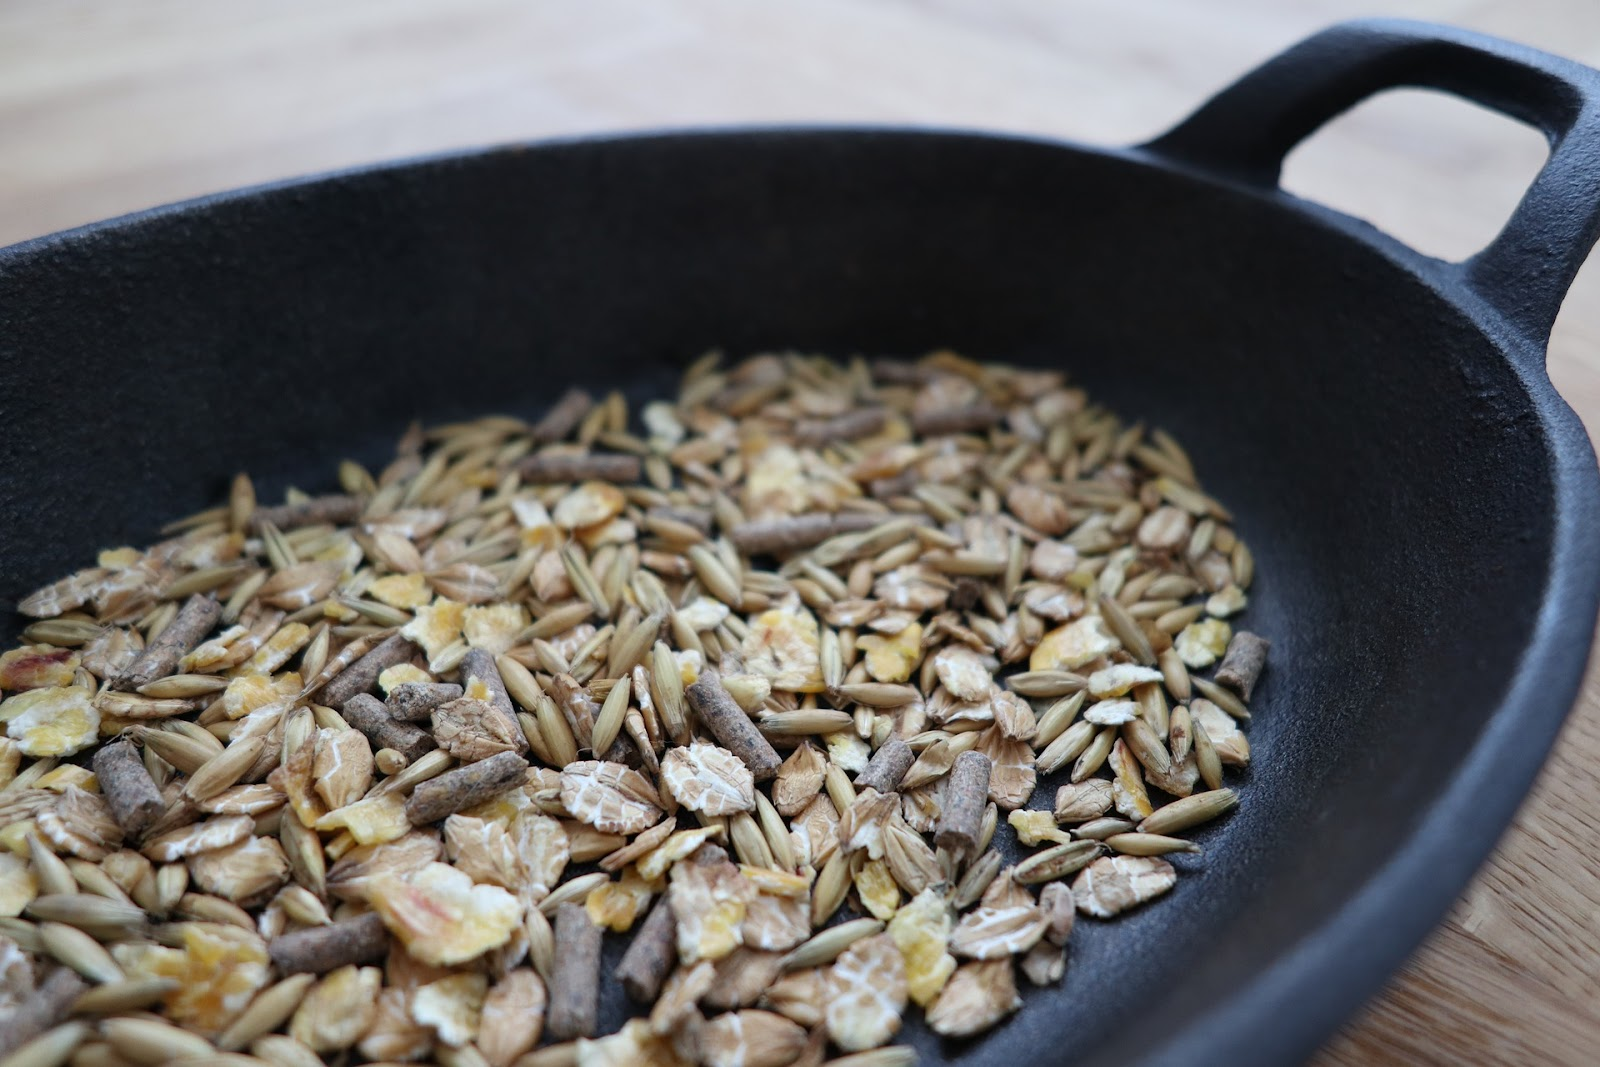 A pan holding a grain/ pelleted feed mix